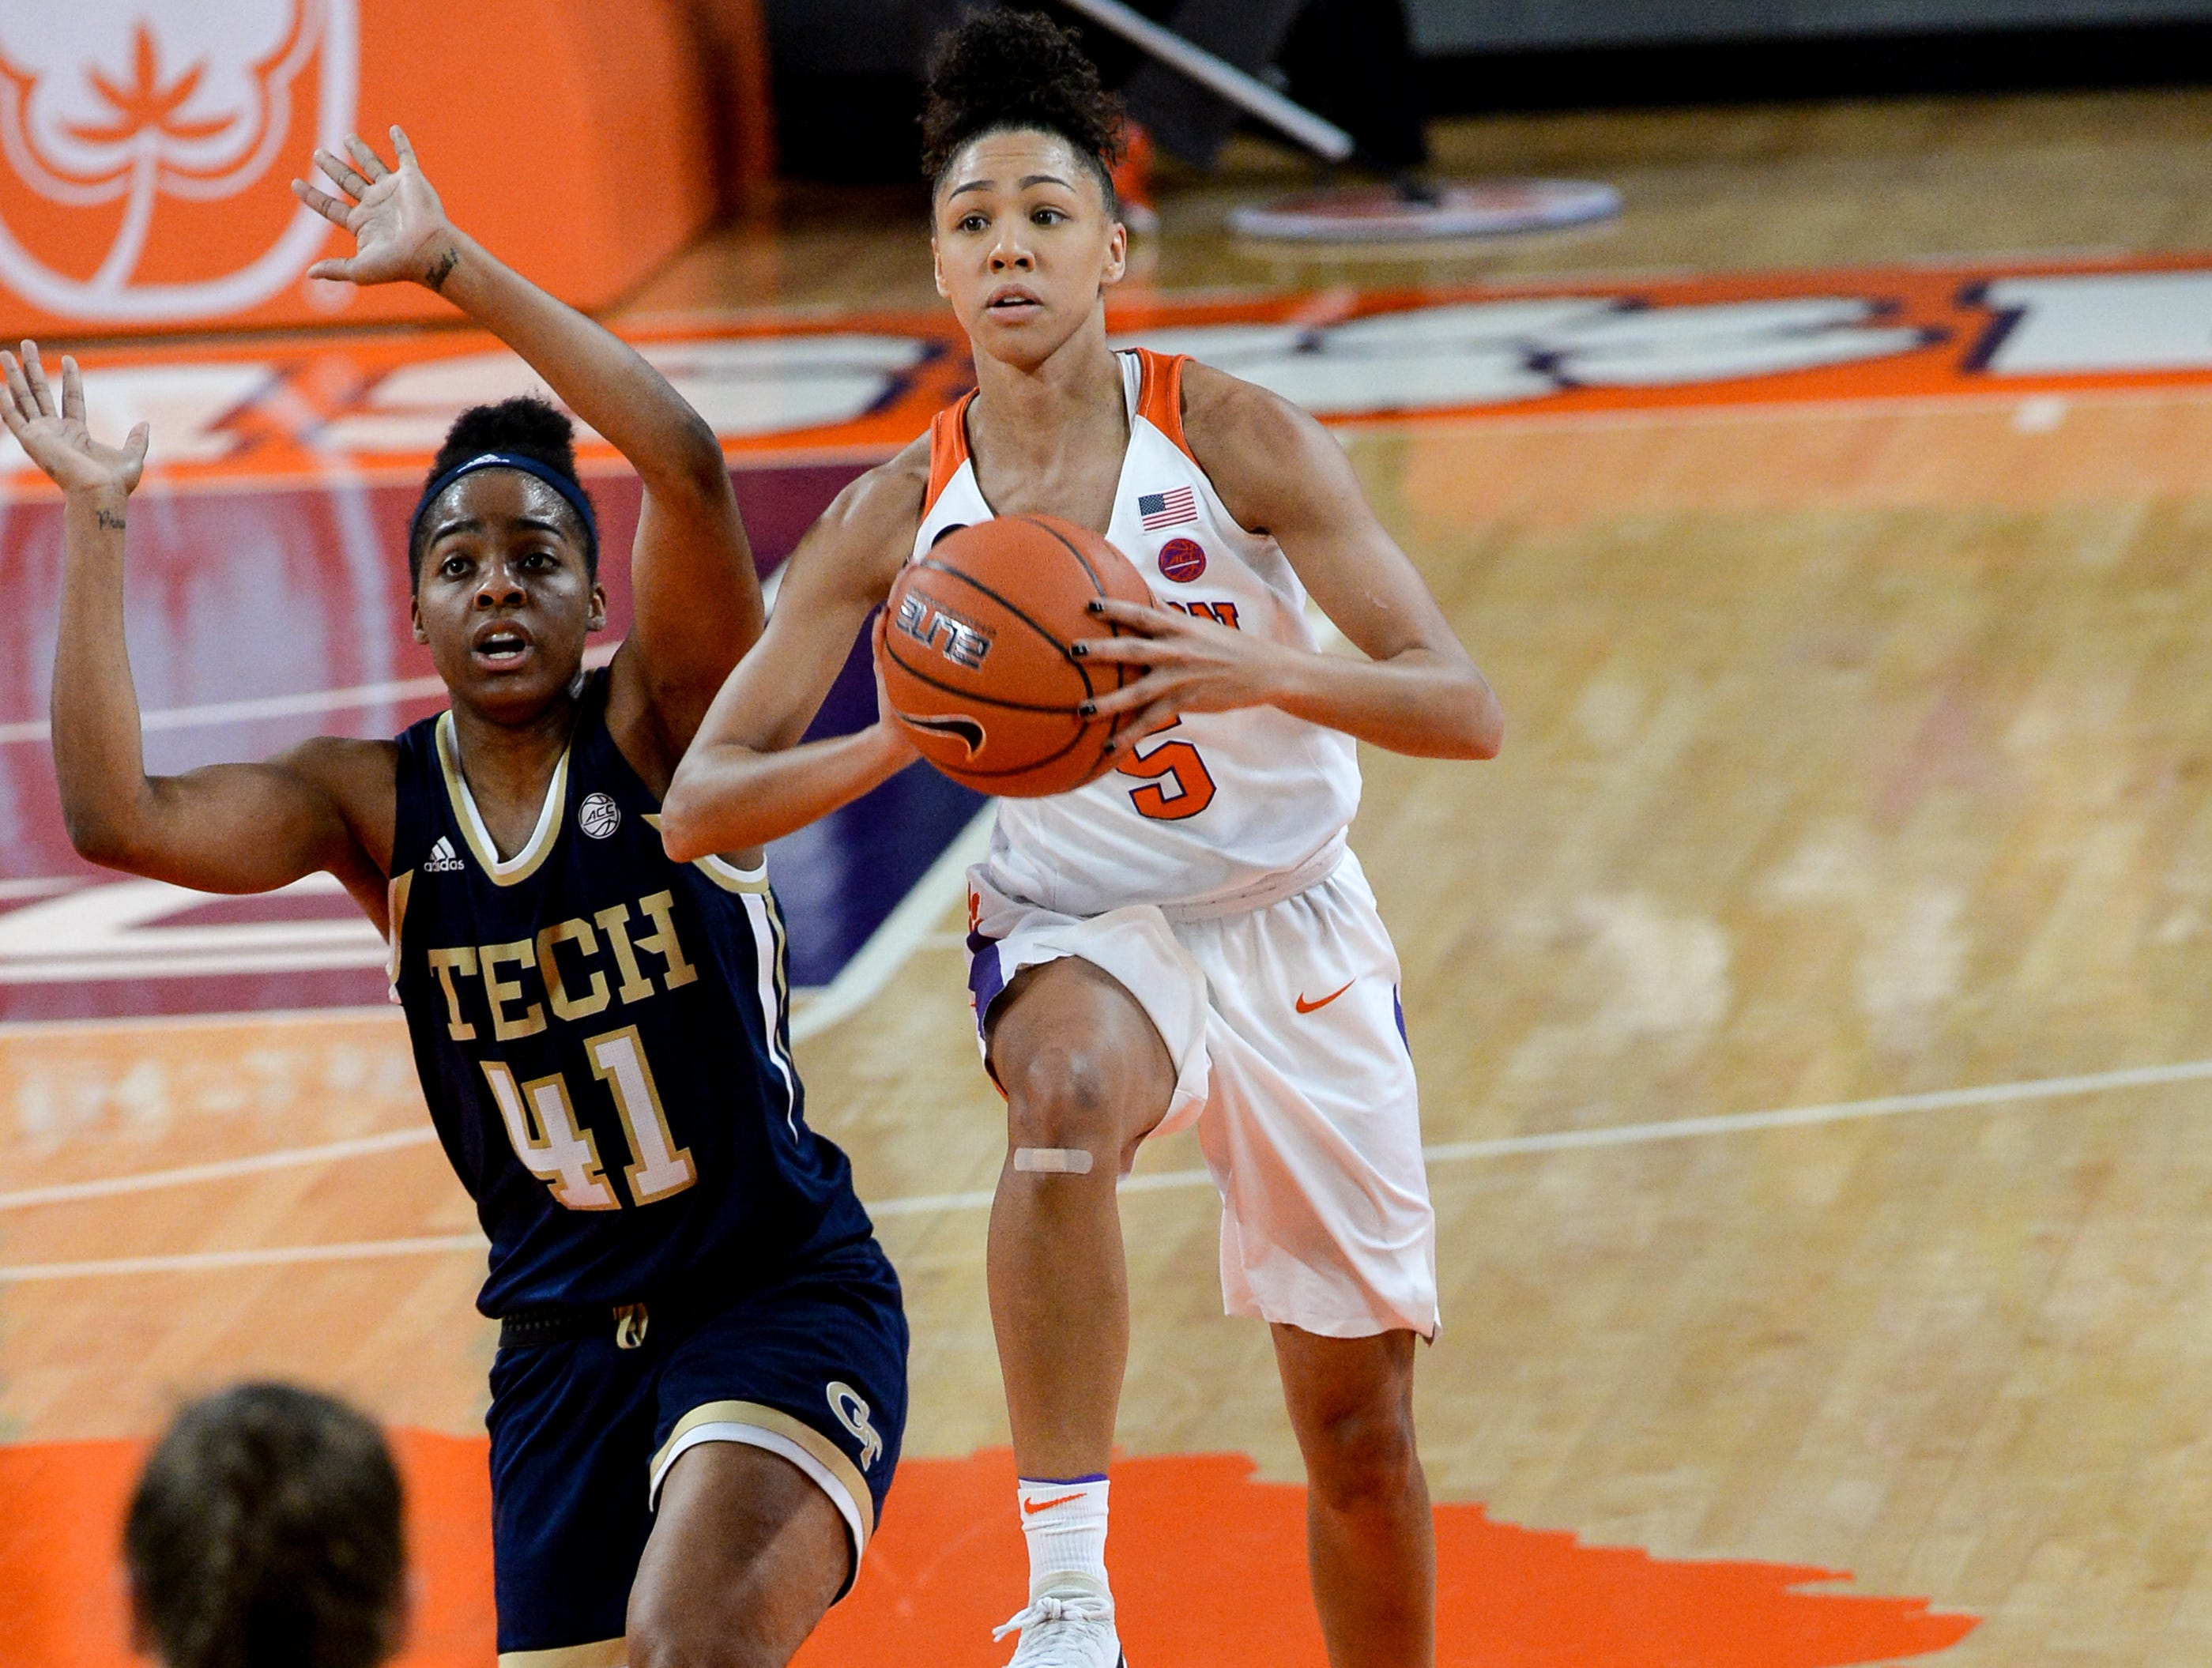 Clemson guard Danielle Edwards(5) shoots near Georgia Tech guard Kierra Fletcher(41) during the first quarter at Littlejohn Coliseum in Clemson Thursday, January 17, 2019.